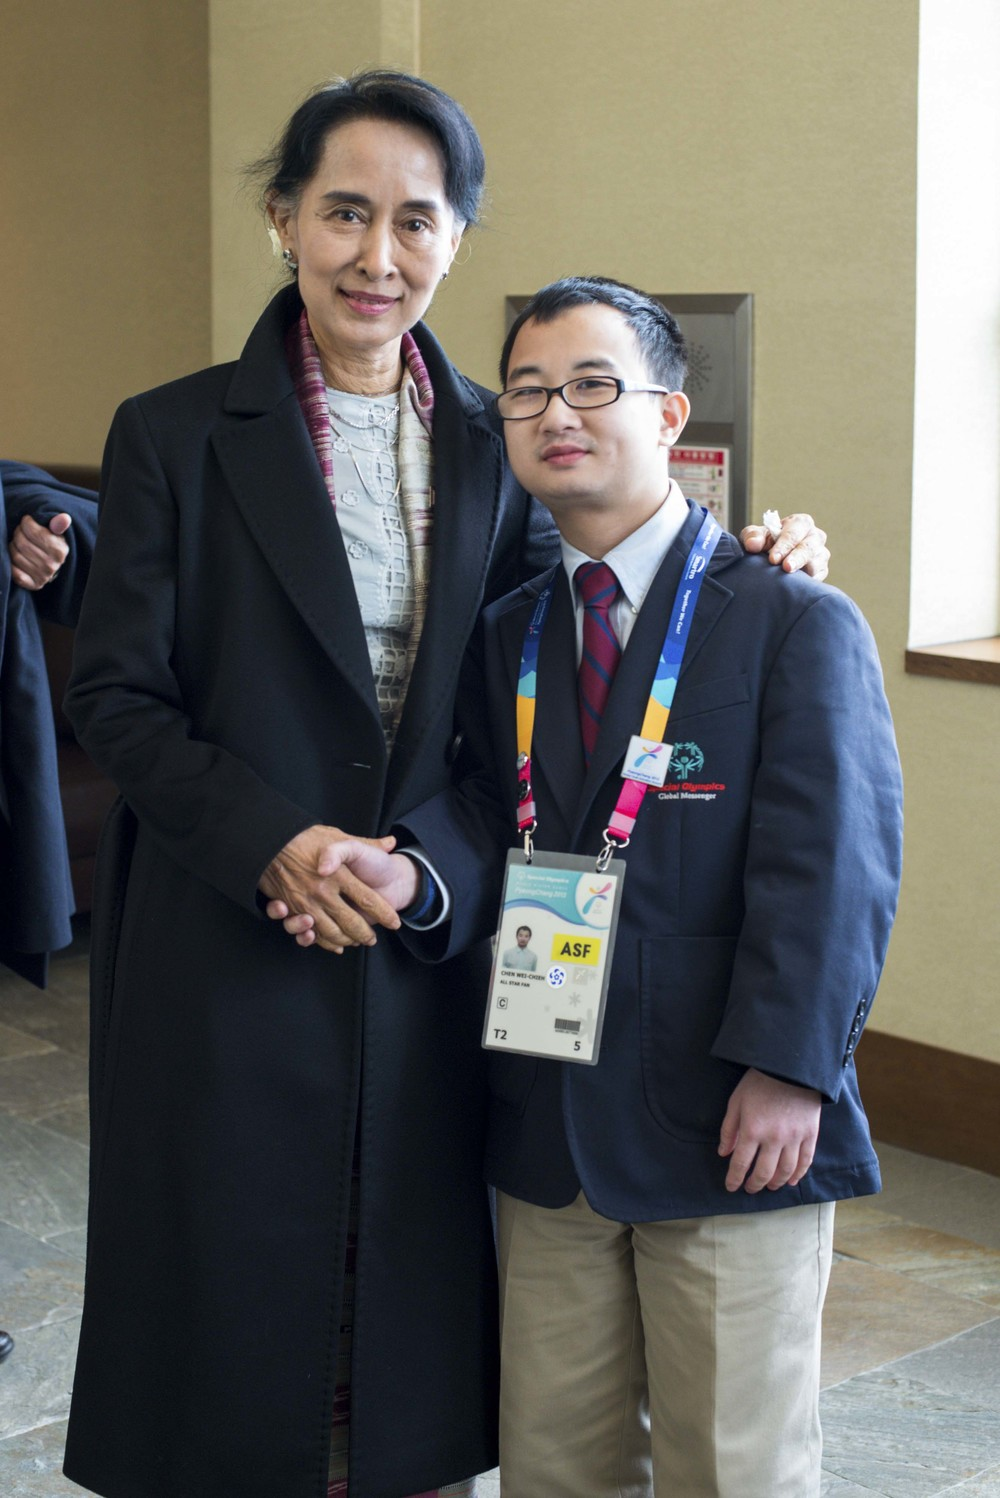 Aung San Suu Kyi meets a participant at The Special Olympics Winter Games, Korea, February 2013